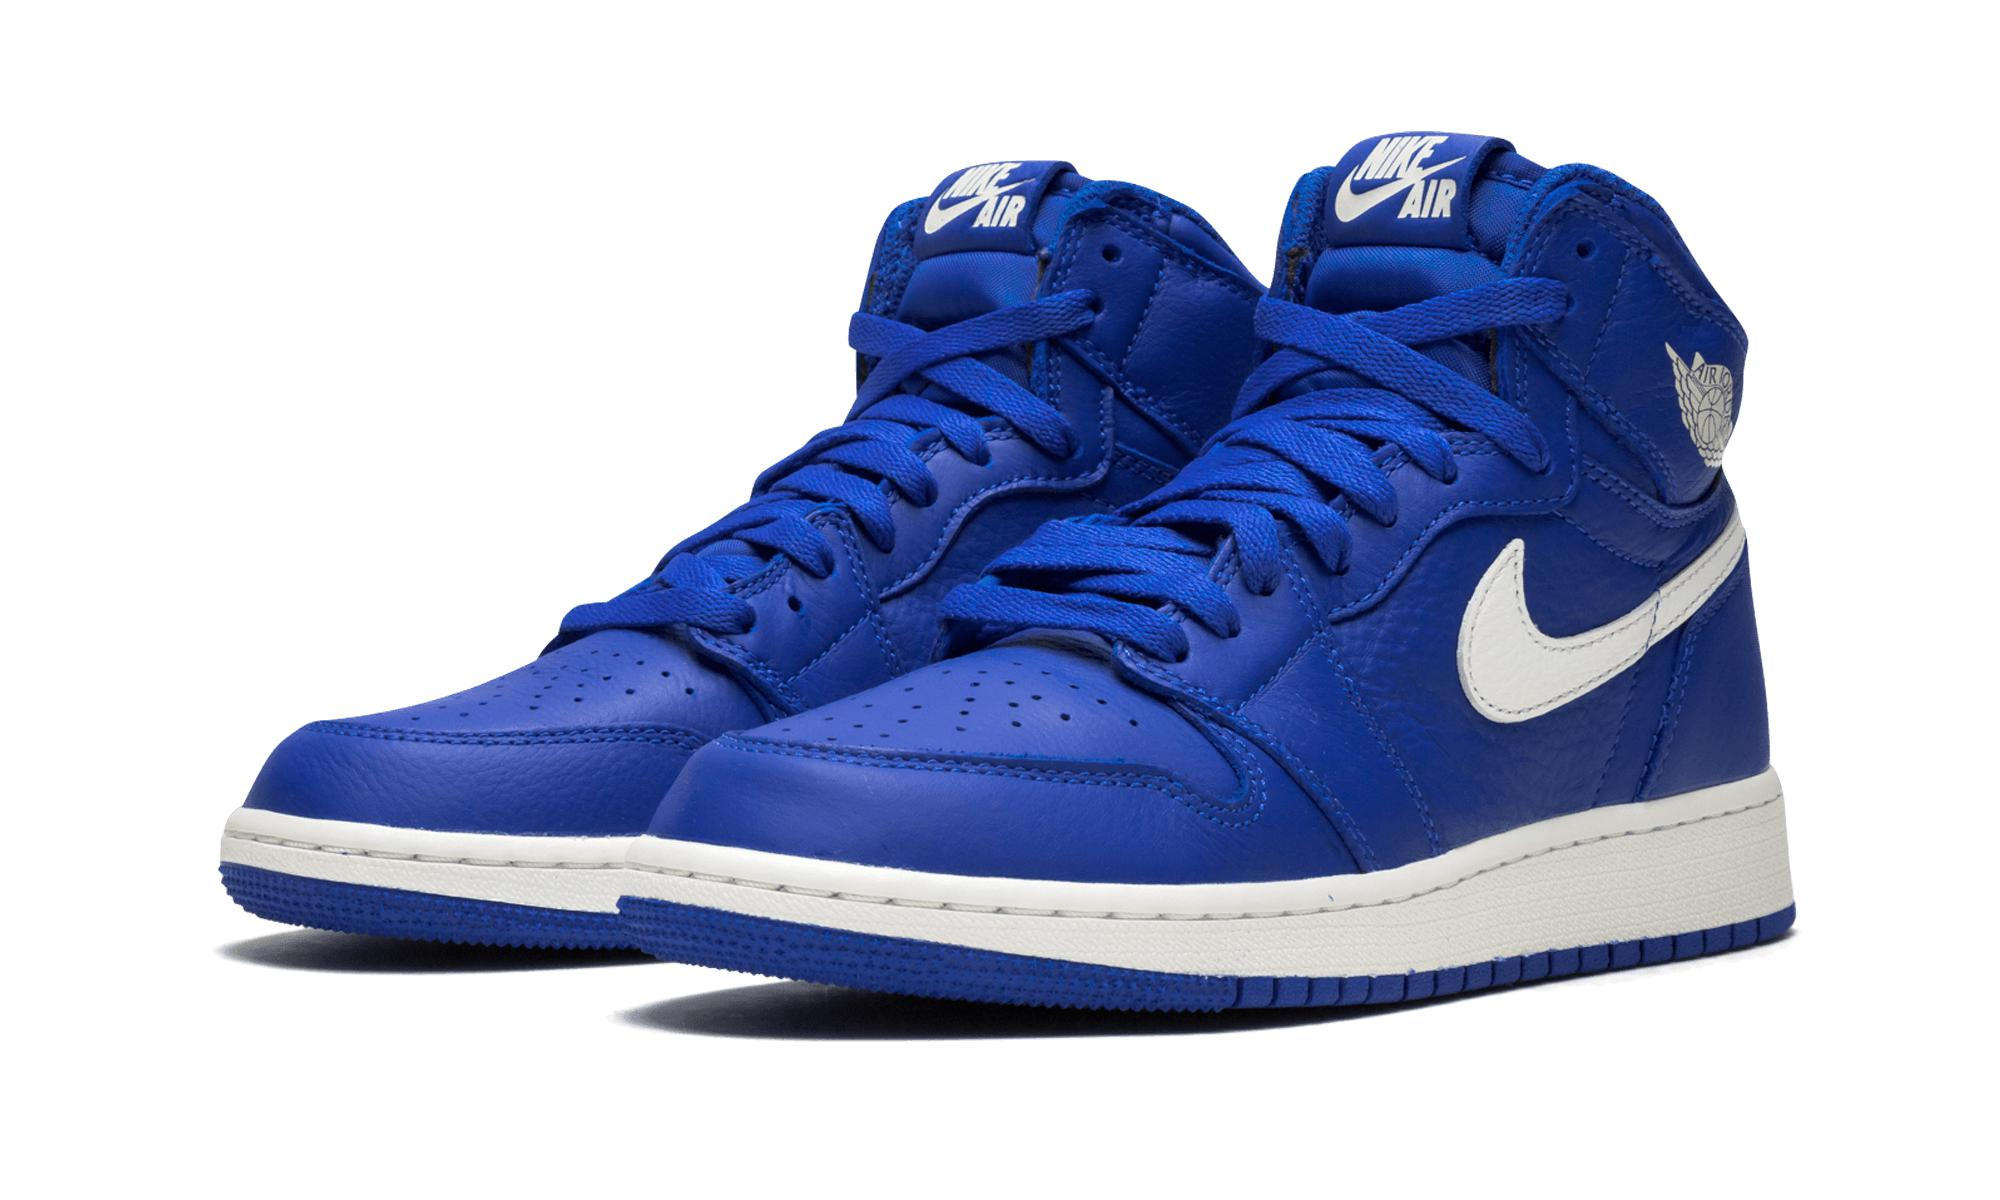 best sneakers a6c1d b3d25 Nike - Blue Air 1 Retro High Og Gs for Men - Lyst. View fullscreen